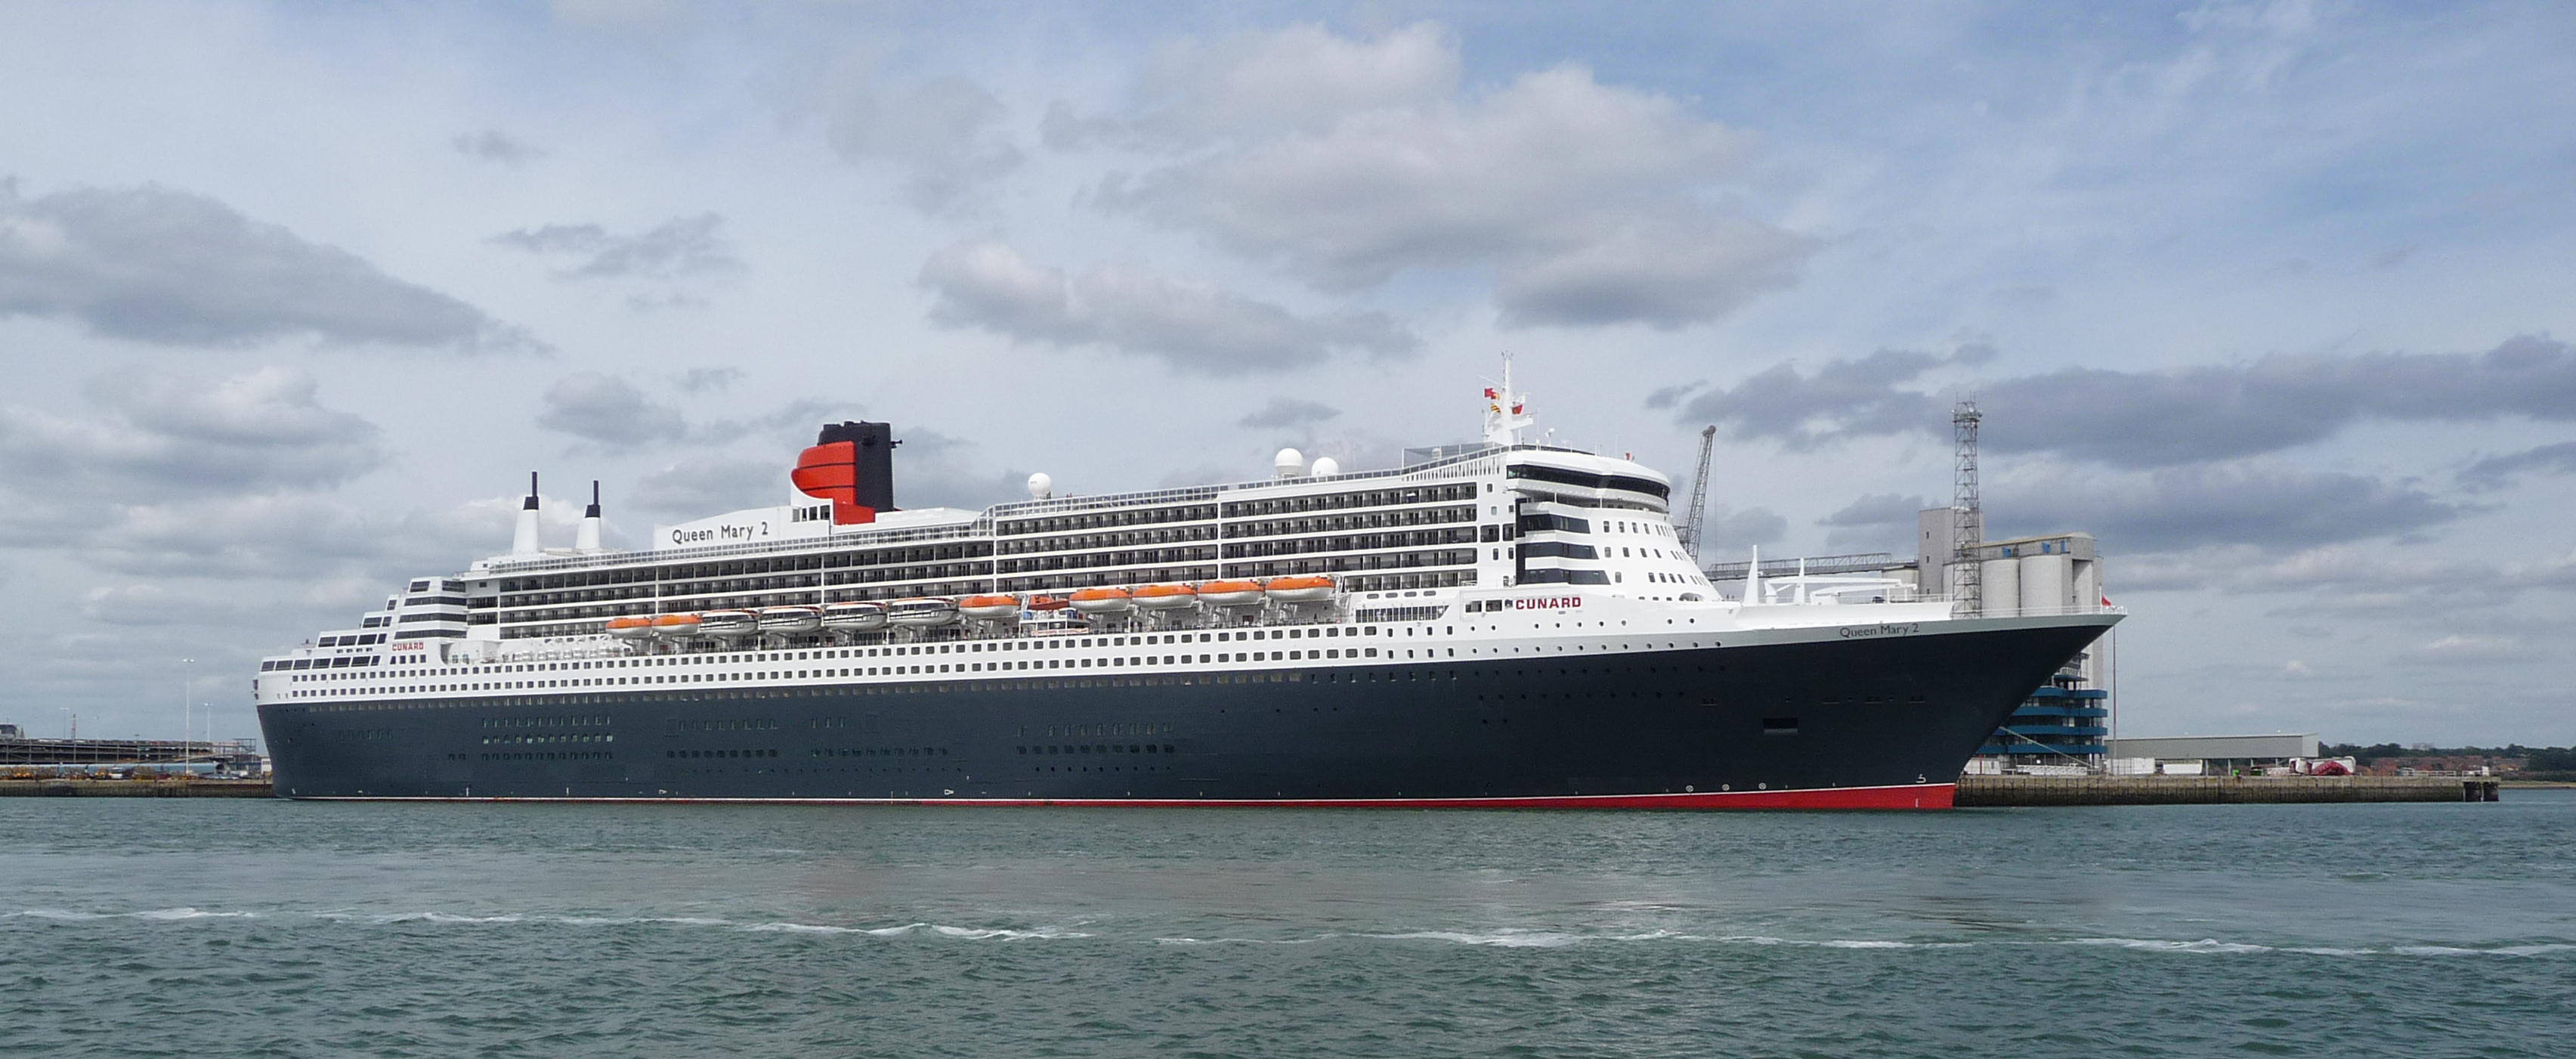 Queen Mary copy